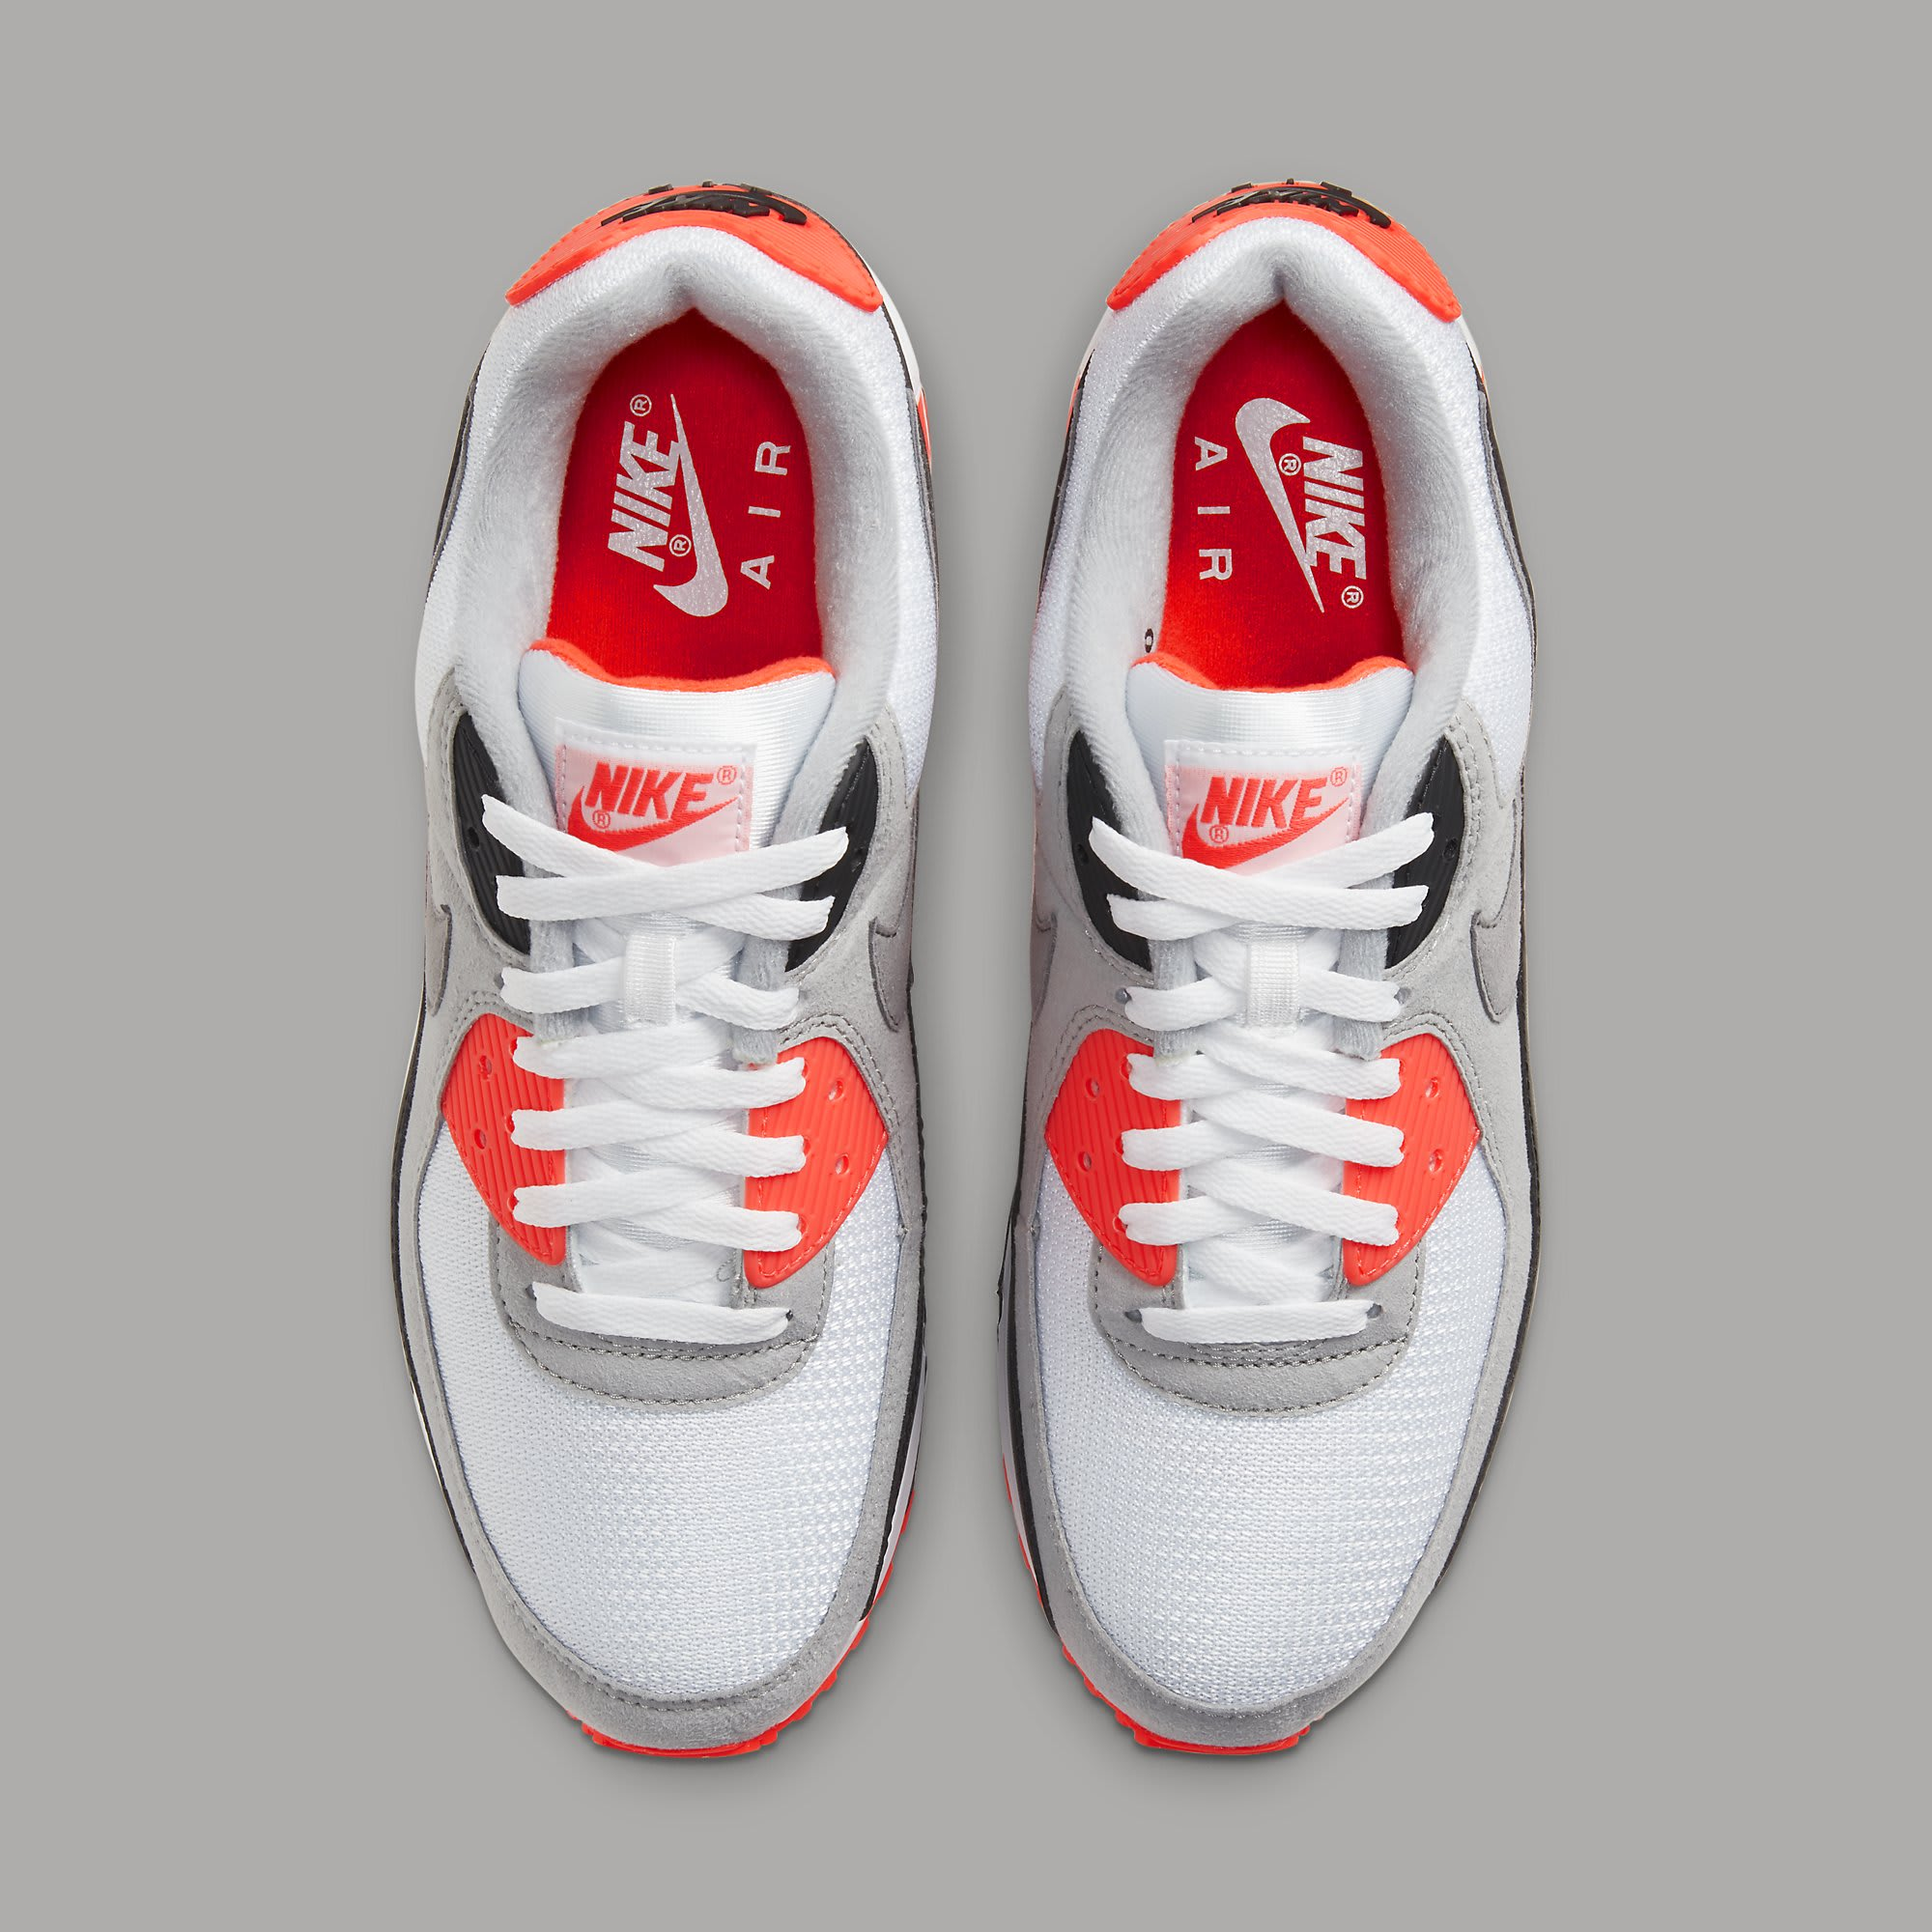 Nike Air Max 90 'Infrared' CT1685-100 Top